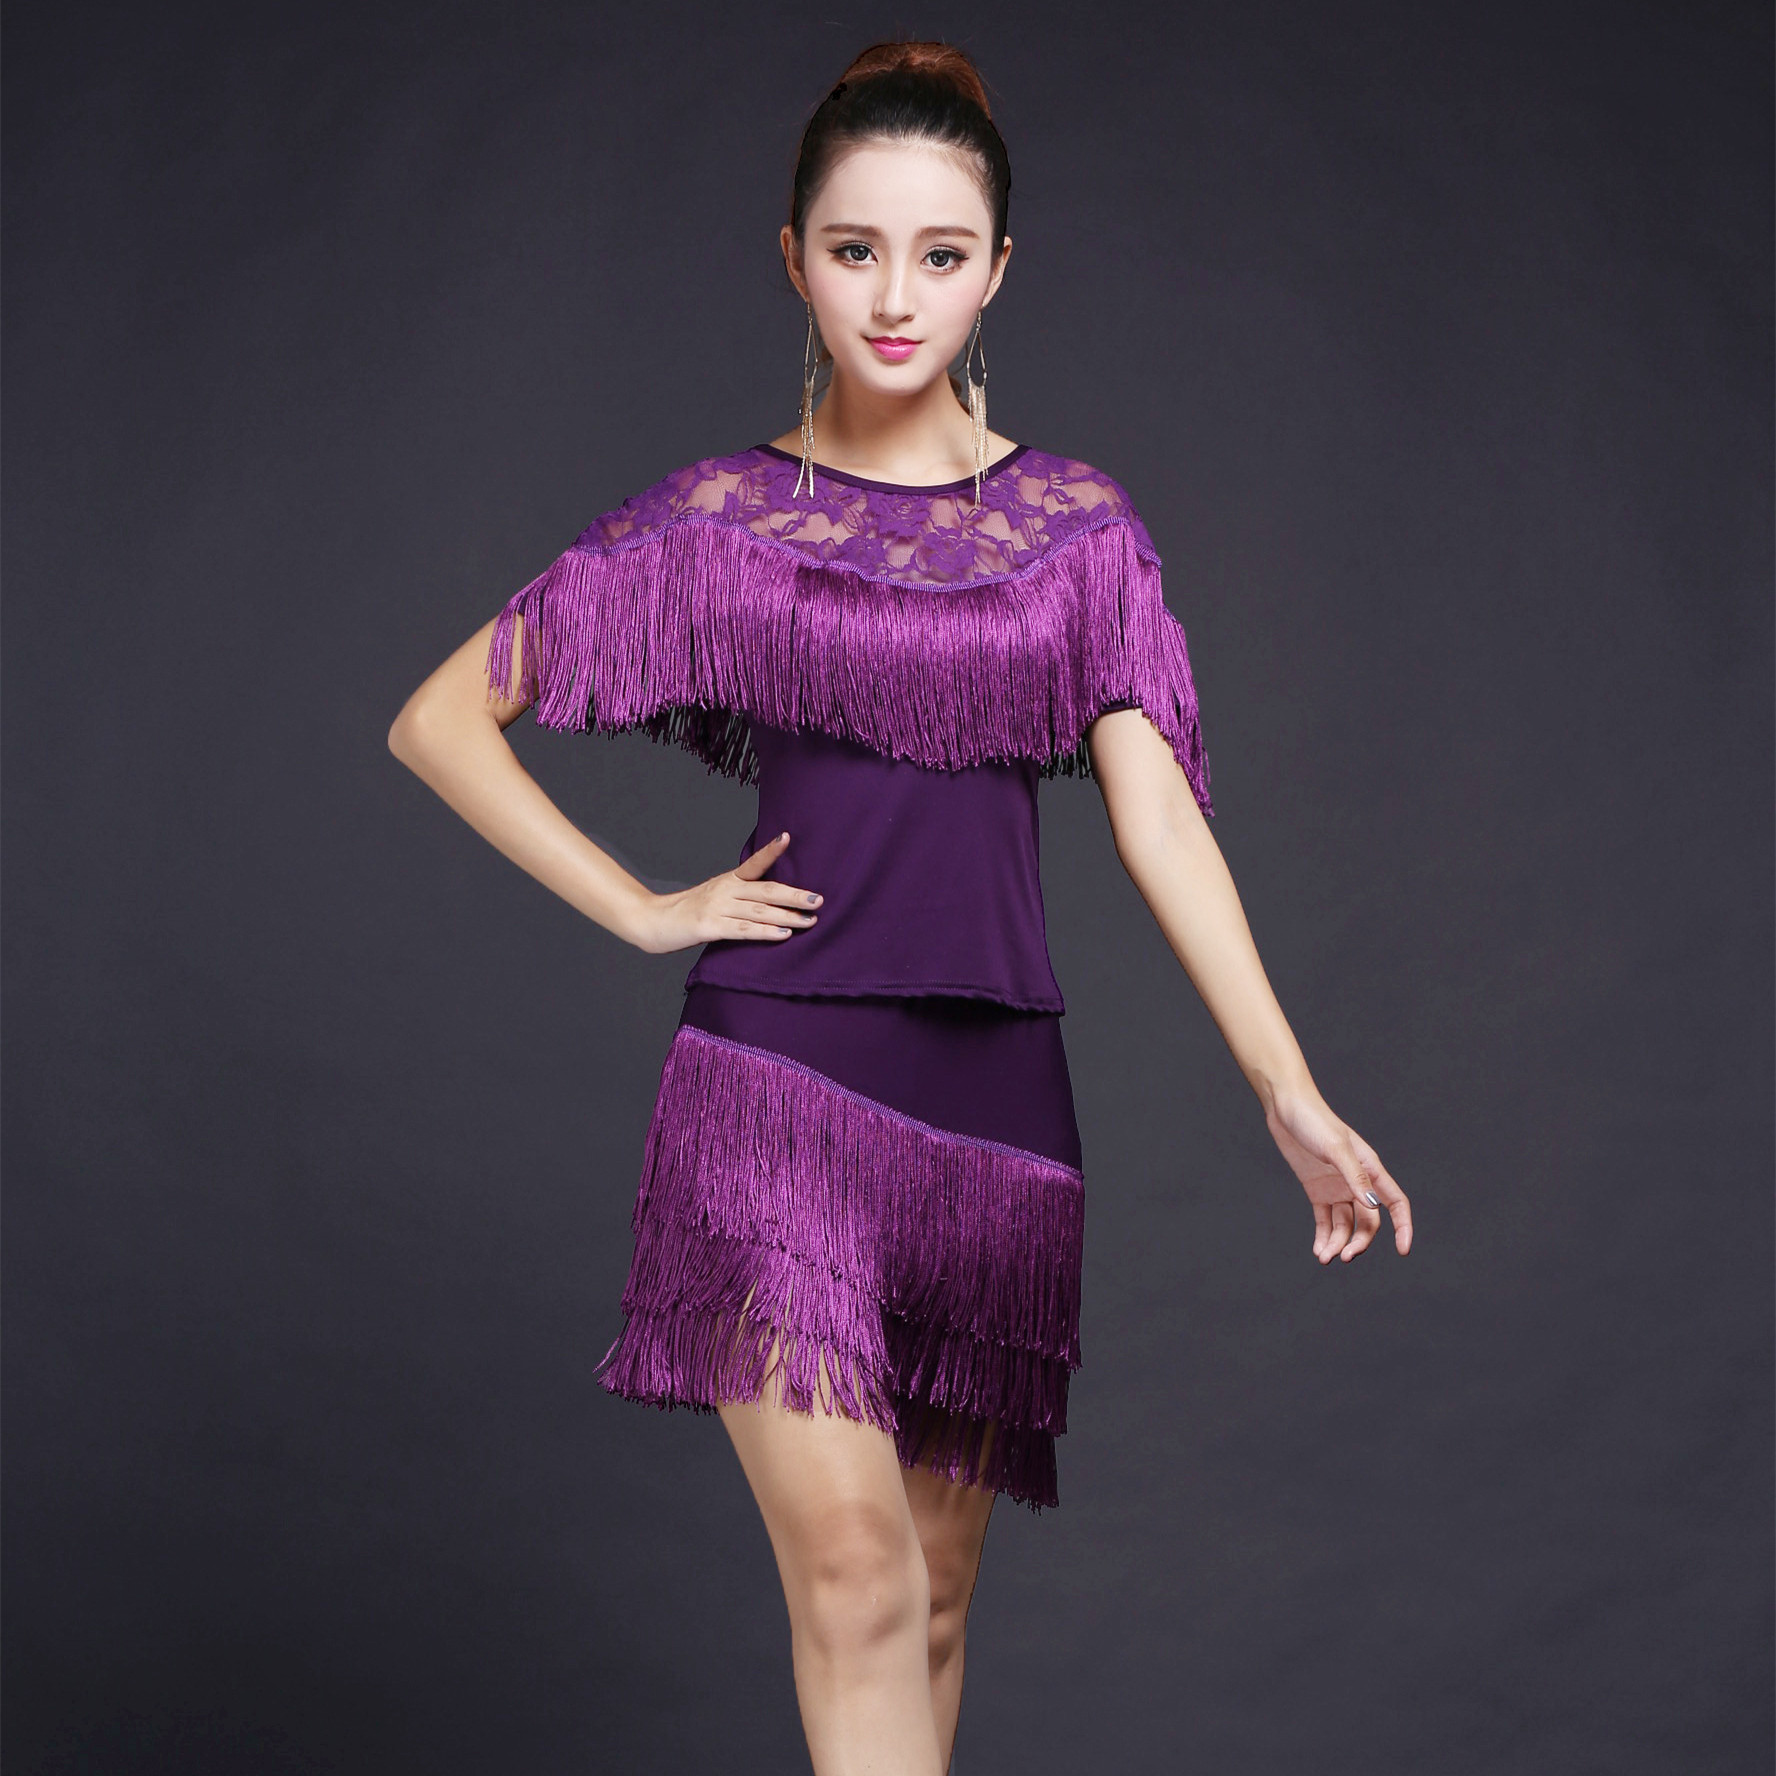 Latin Dance Dress for Women Adult Girls Practice Suit Fringed Skirt Cha Cha  Dance Cloth Competition 4e52ea5a3873